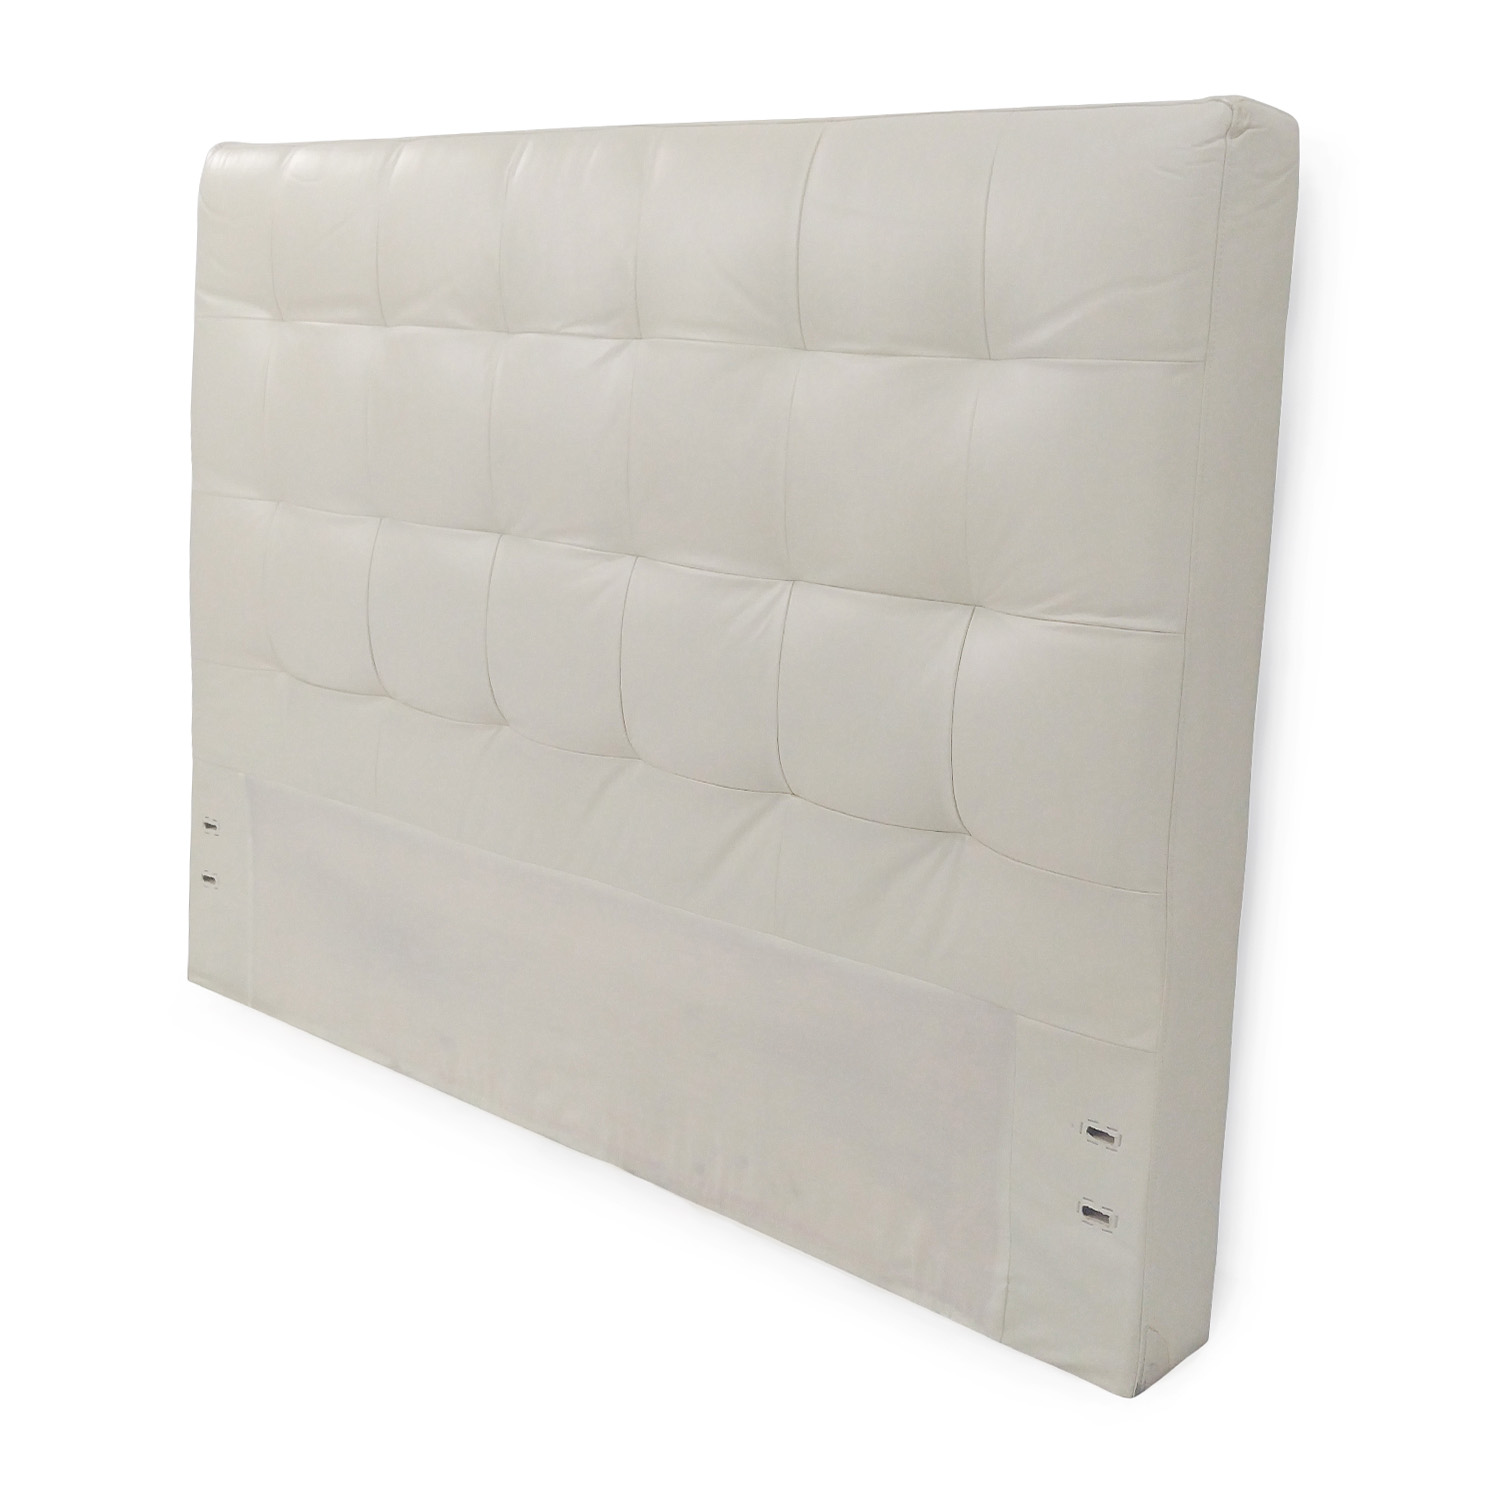 ip dark leather luxe buttons com upholstered with brown tufted of kiera wall headboard panel grace set walmart